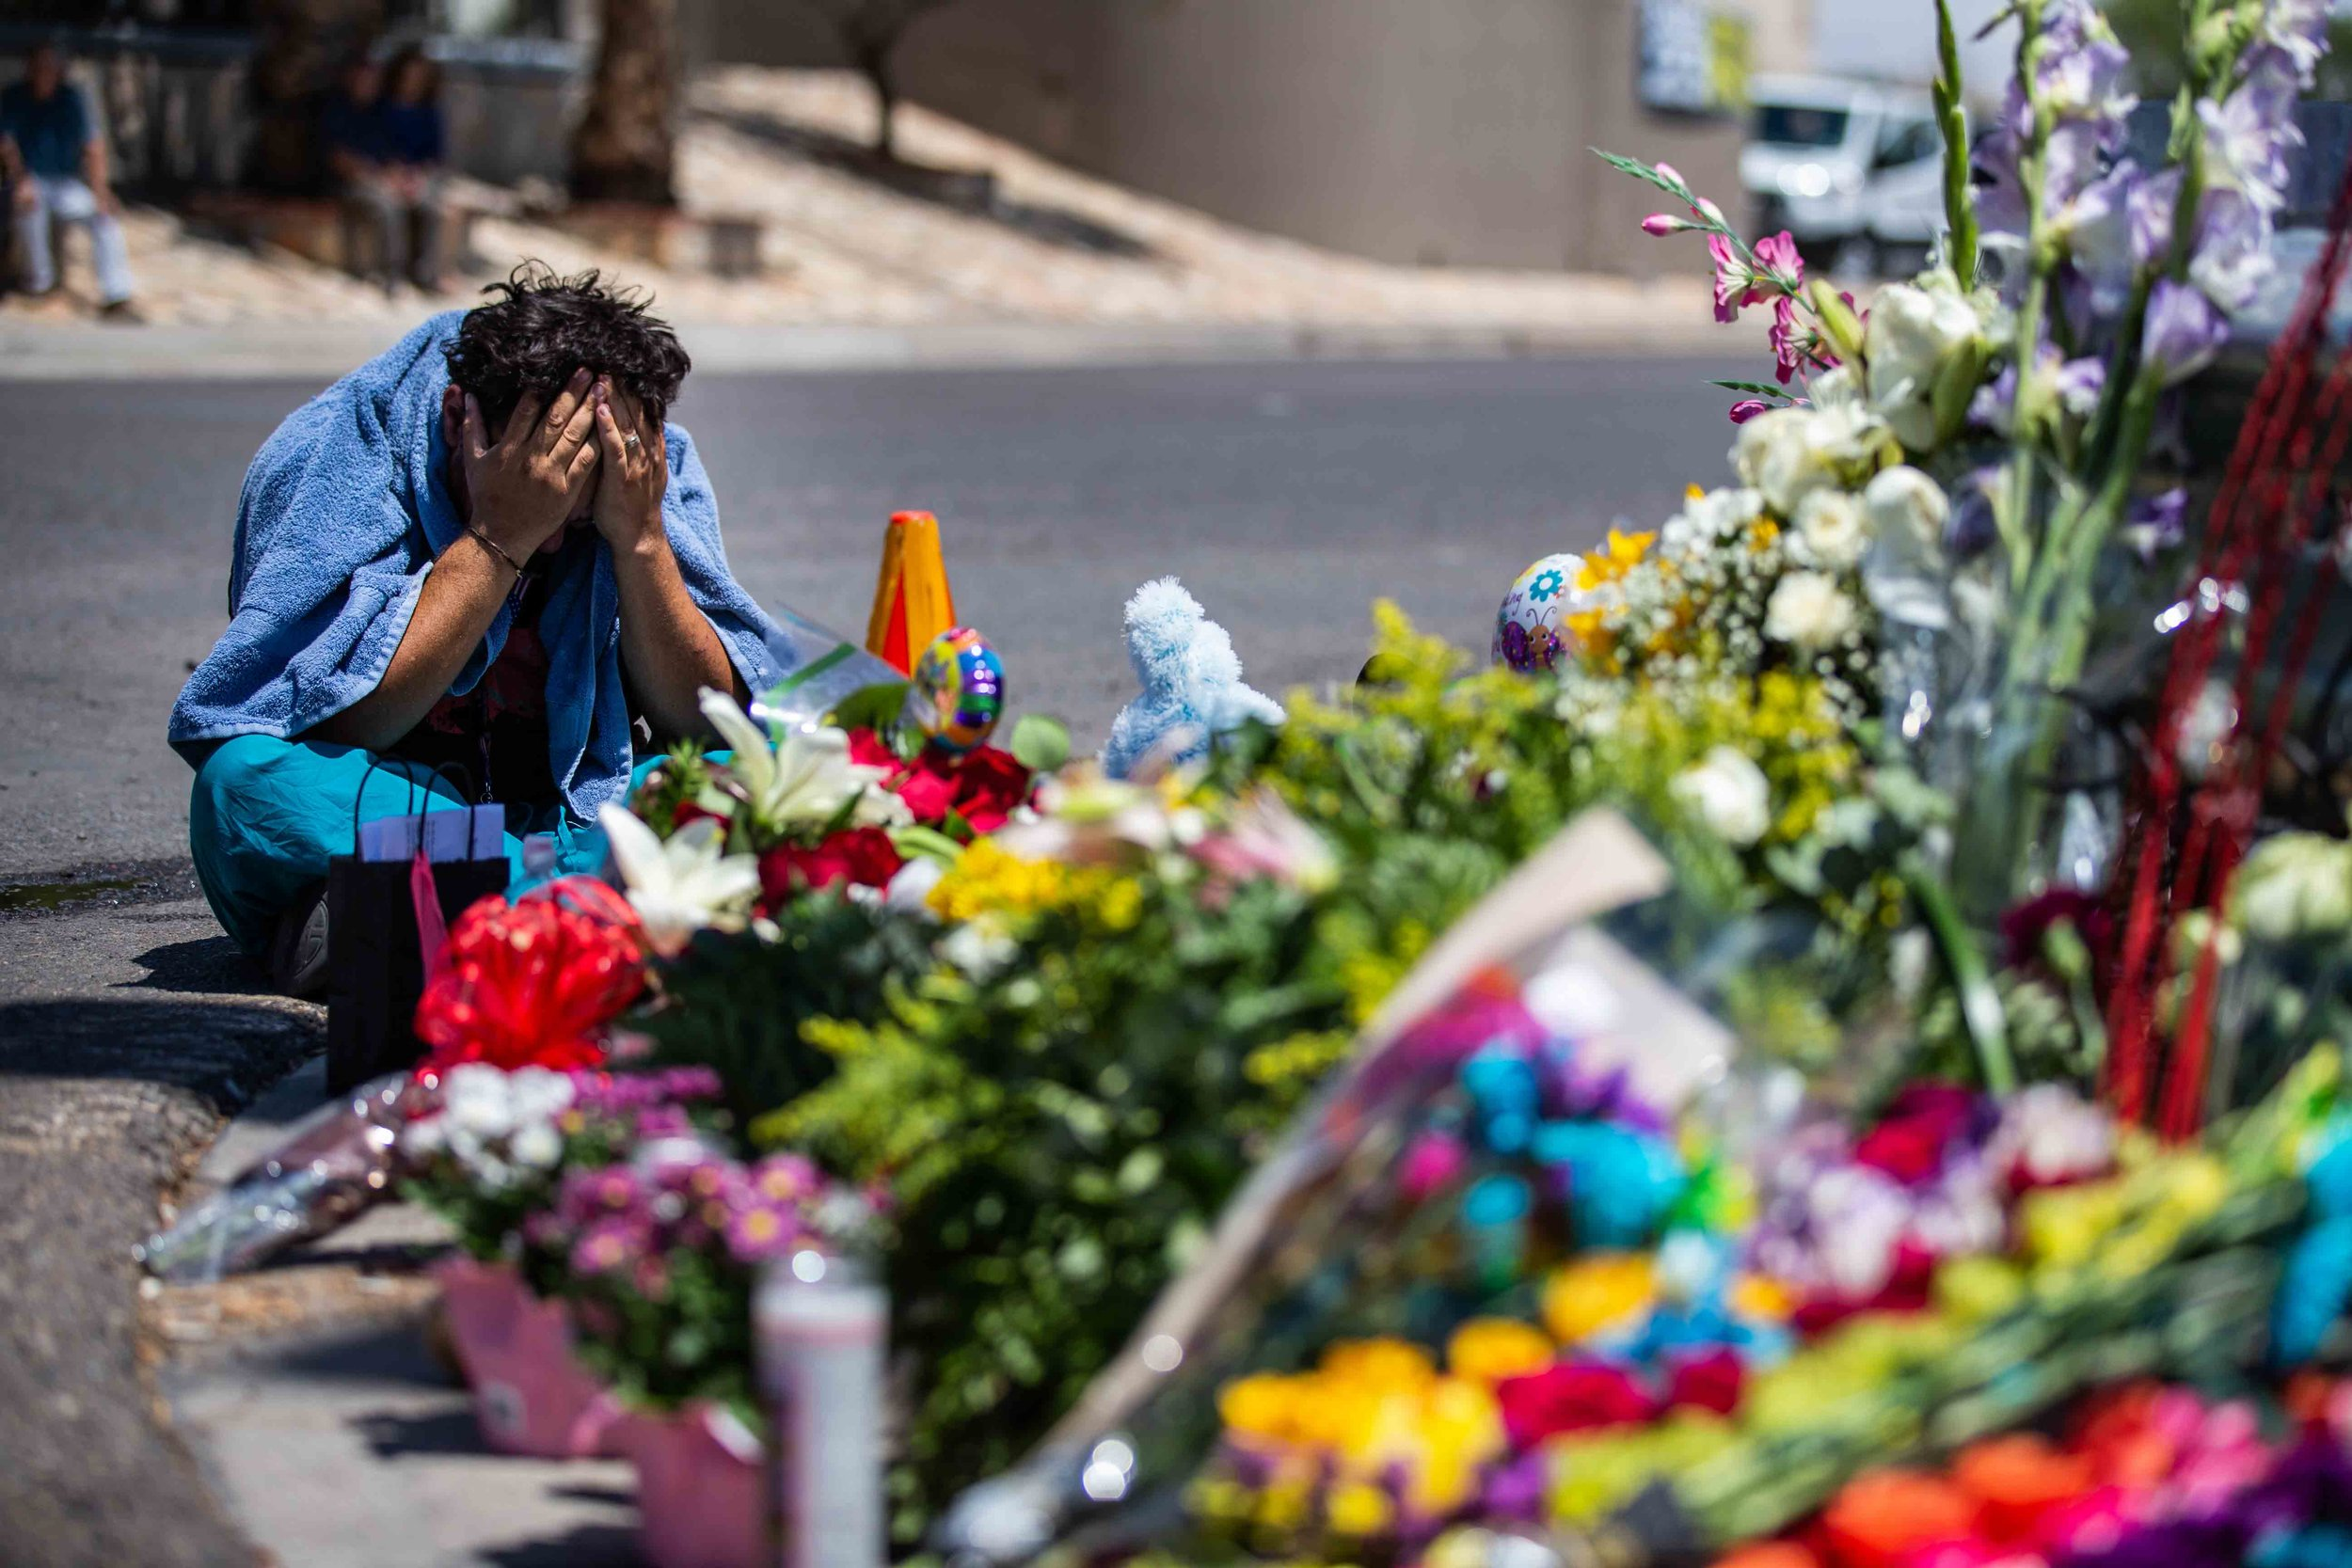 Felipe Avila puts his head in his hands as he cries at the place where the locals bring flowers, stuffed animals, candels and posters to honor the memory of the victims of the mass shooting occurred in Walmart on Saturday morning in El Paso on Sunday, August 4, 2019.